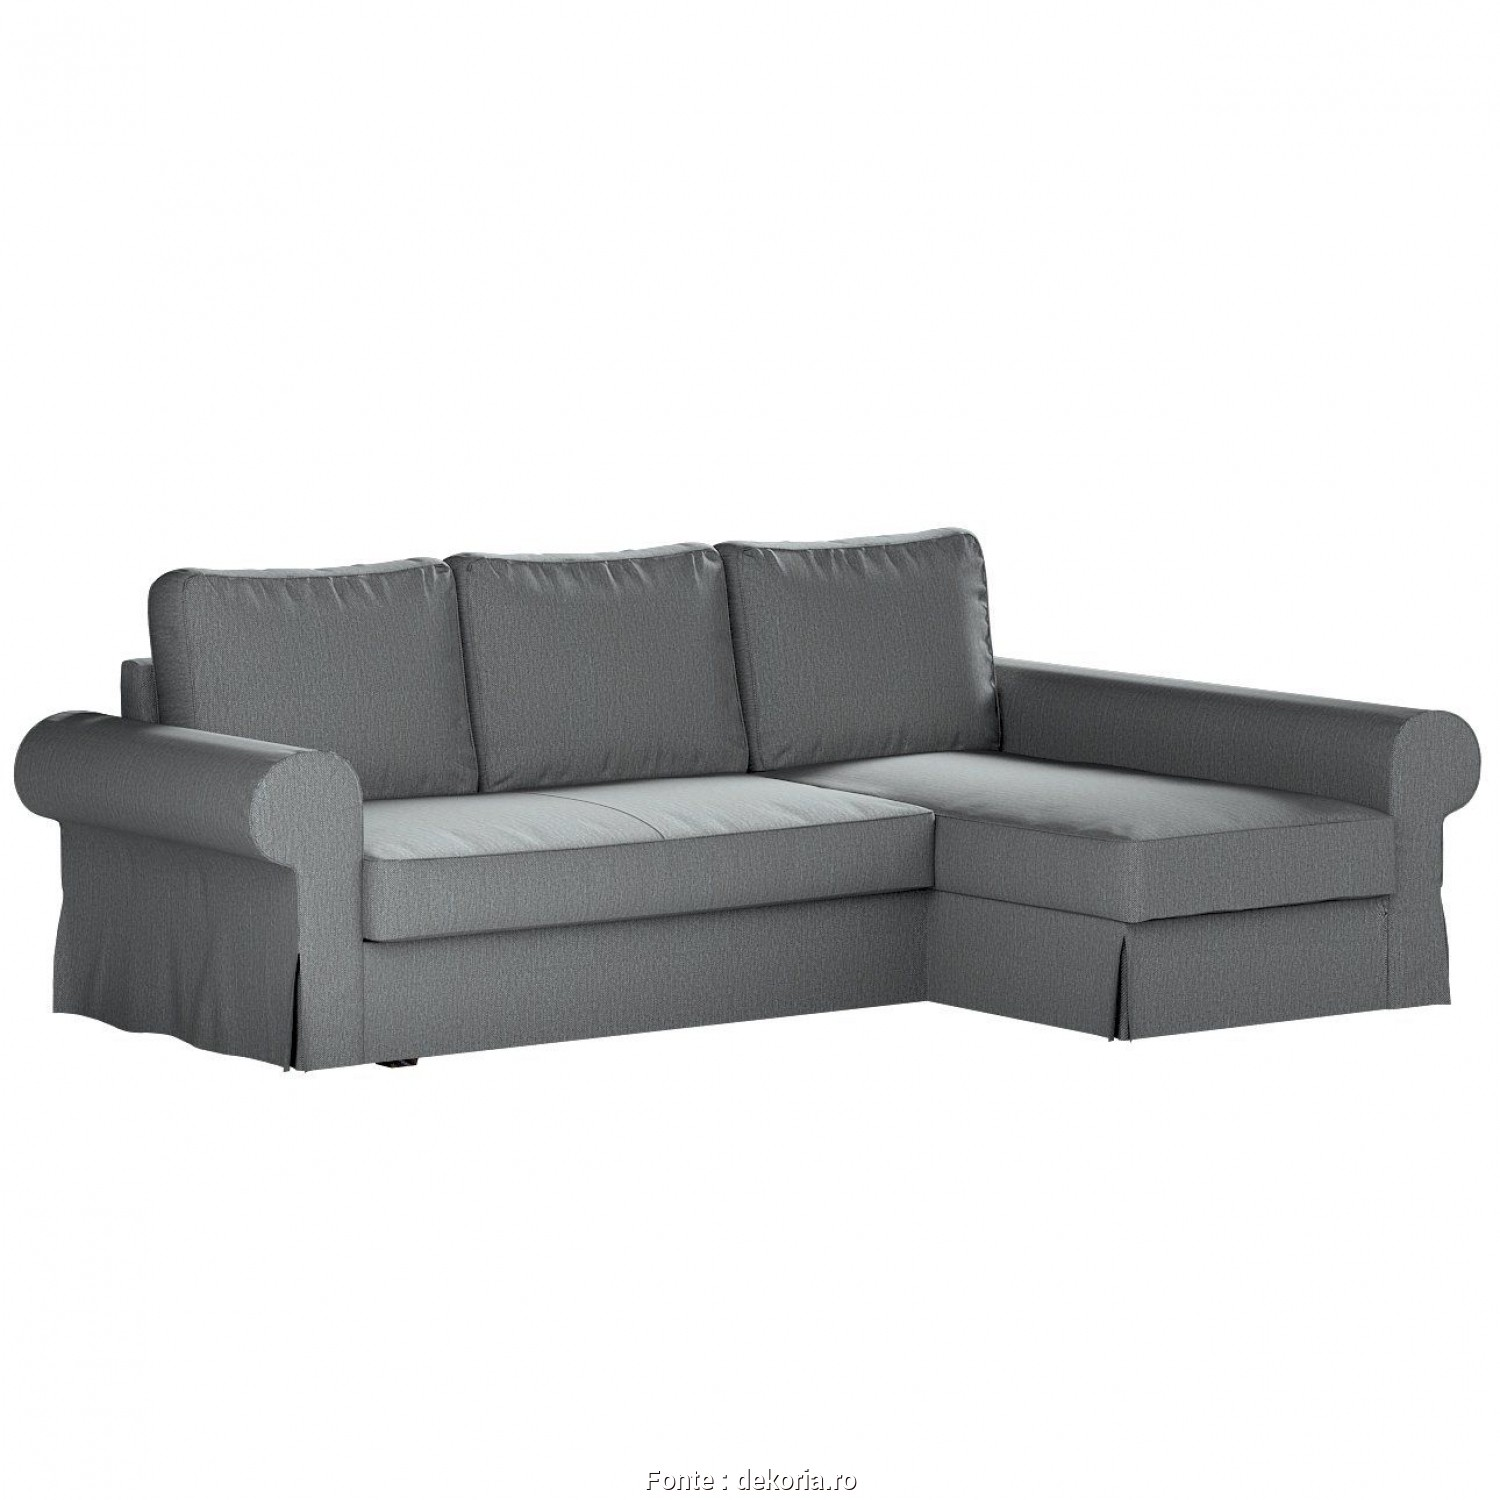 Ikea Backabro Garantie, Bellissima Backabro Sofa, With Chaise Longue Cover In Collection Living, Fabric: 160-08